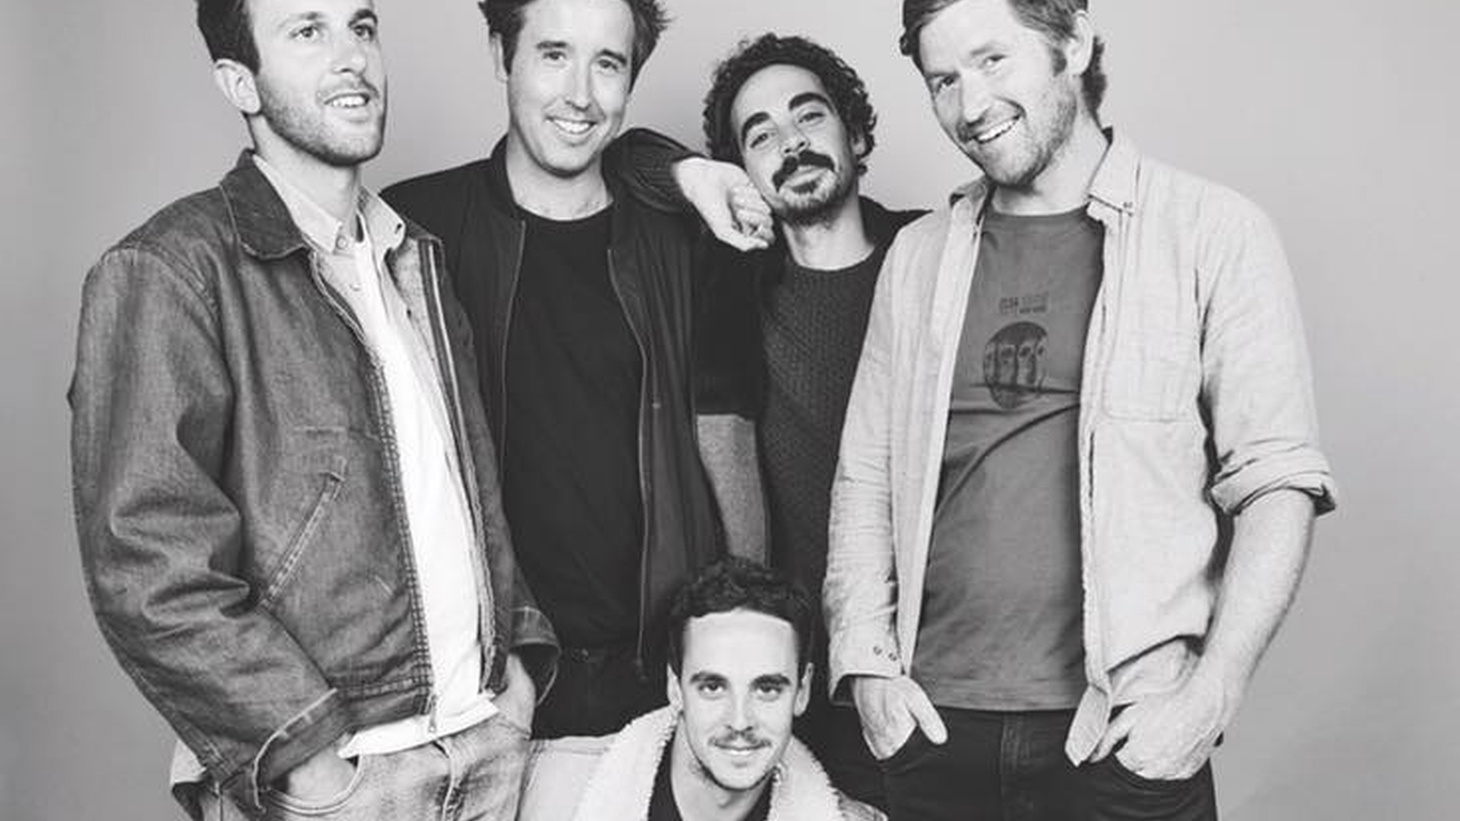 """Since their start, Melbourne five-piece Rolling Blackouts Coastal Fever could feel their immediate chemistry. They're stage ready to play new songs from an their upcoming debut album out early summer. Let's rock with """"Talking Straight."""""""